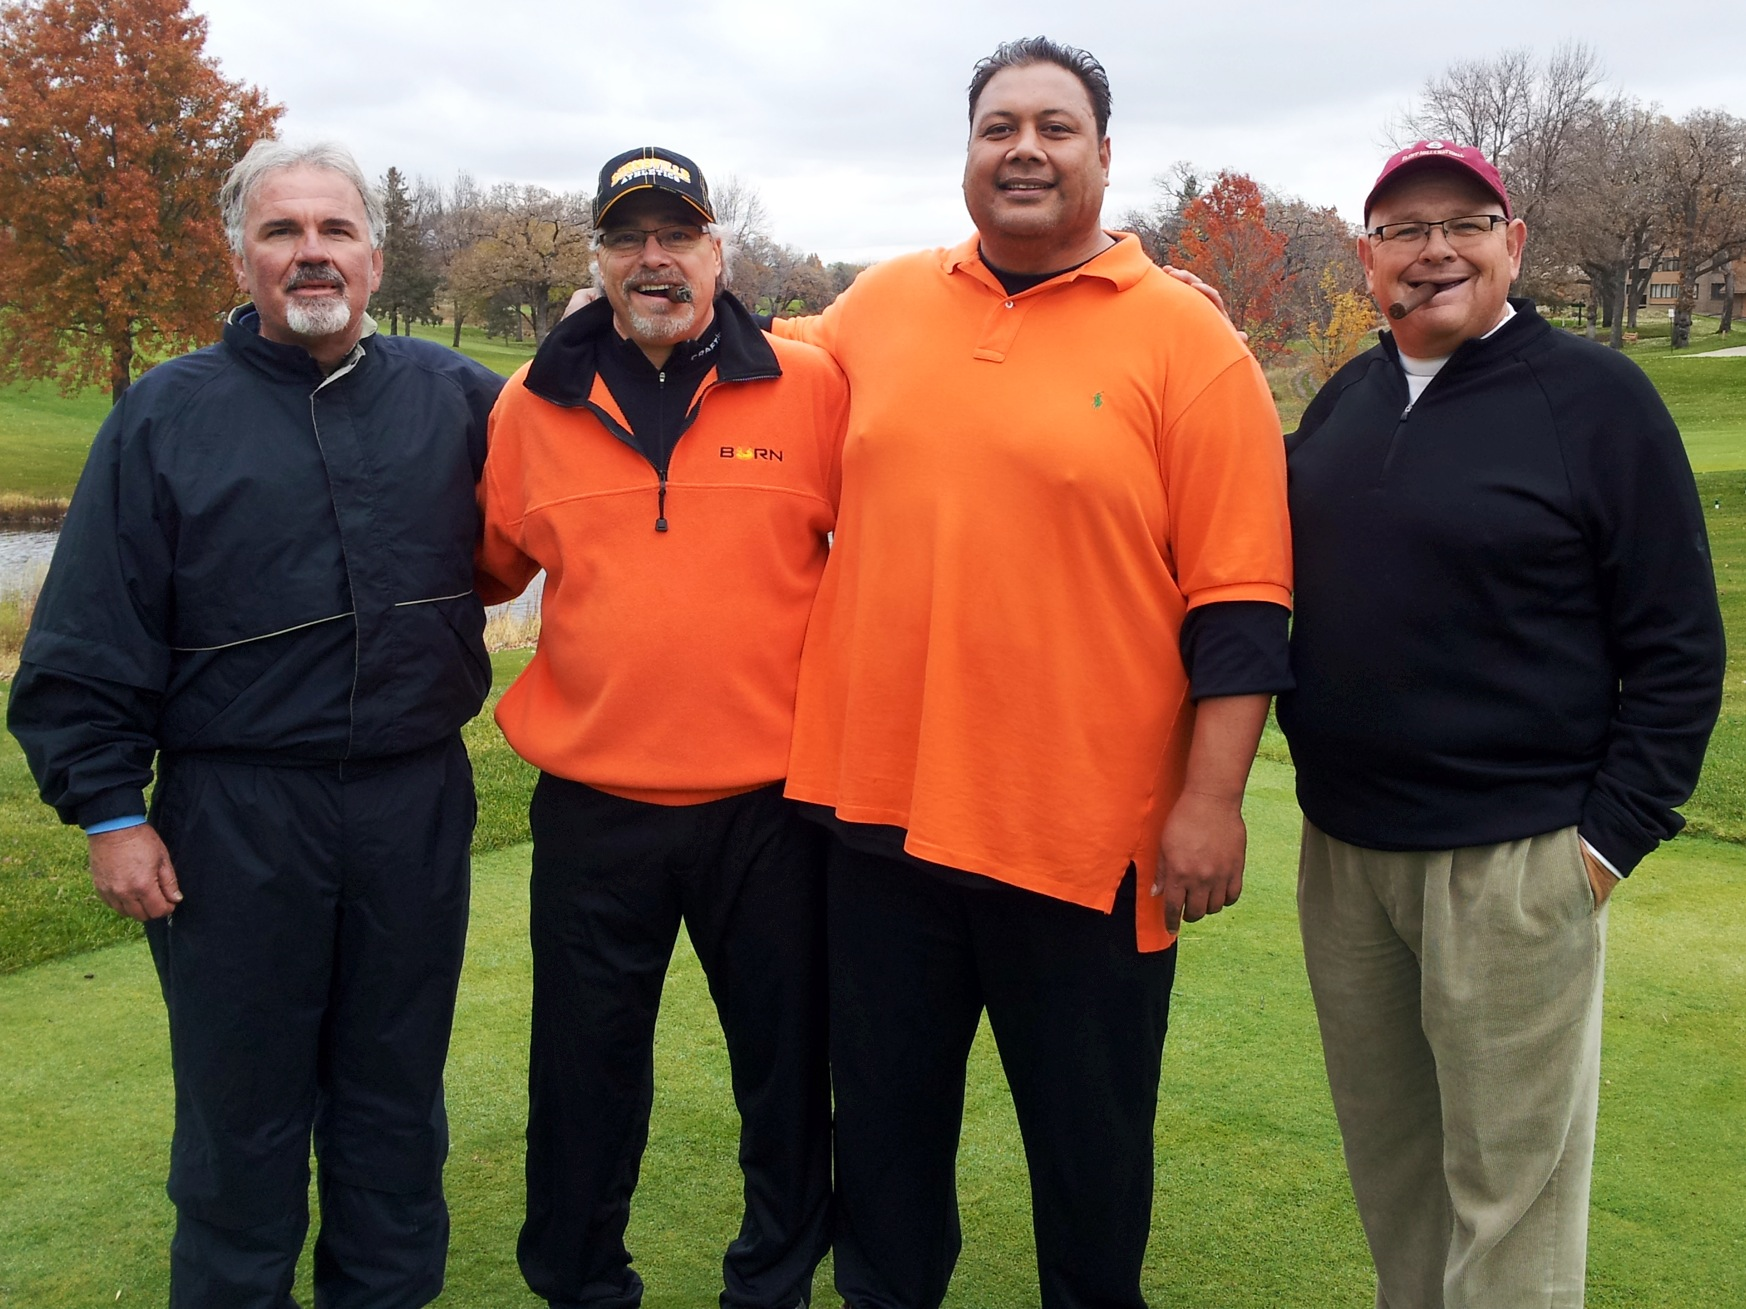 """The Majors"" Promotion winner with friends at Minnesota Valley Country Club."